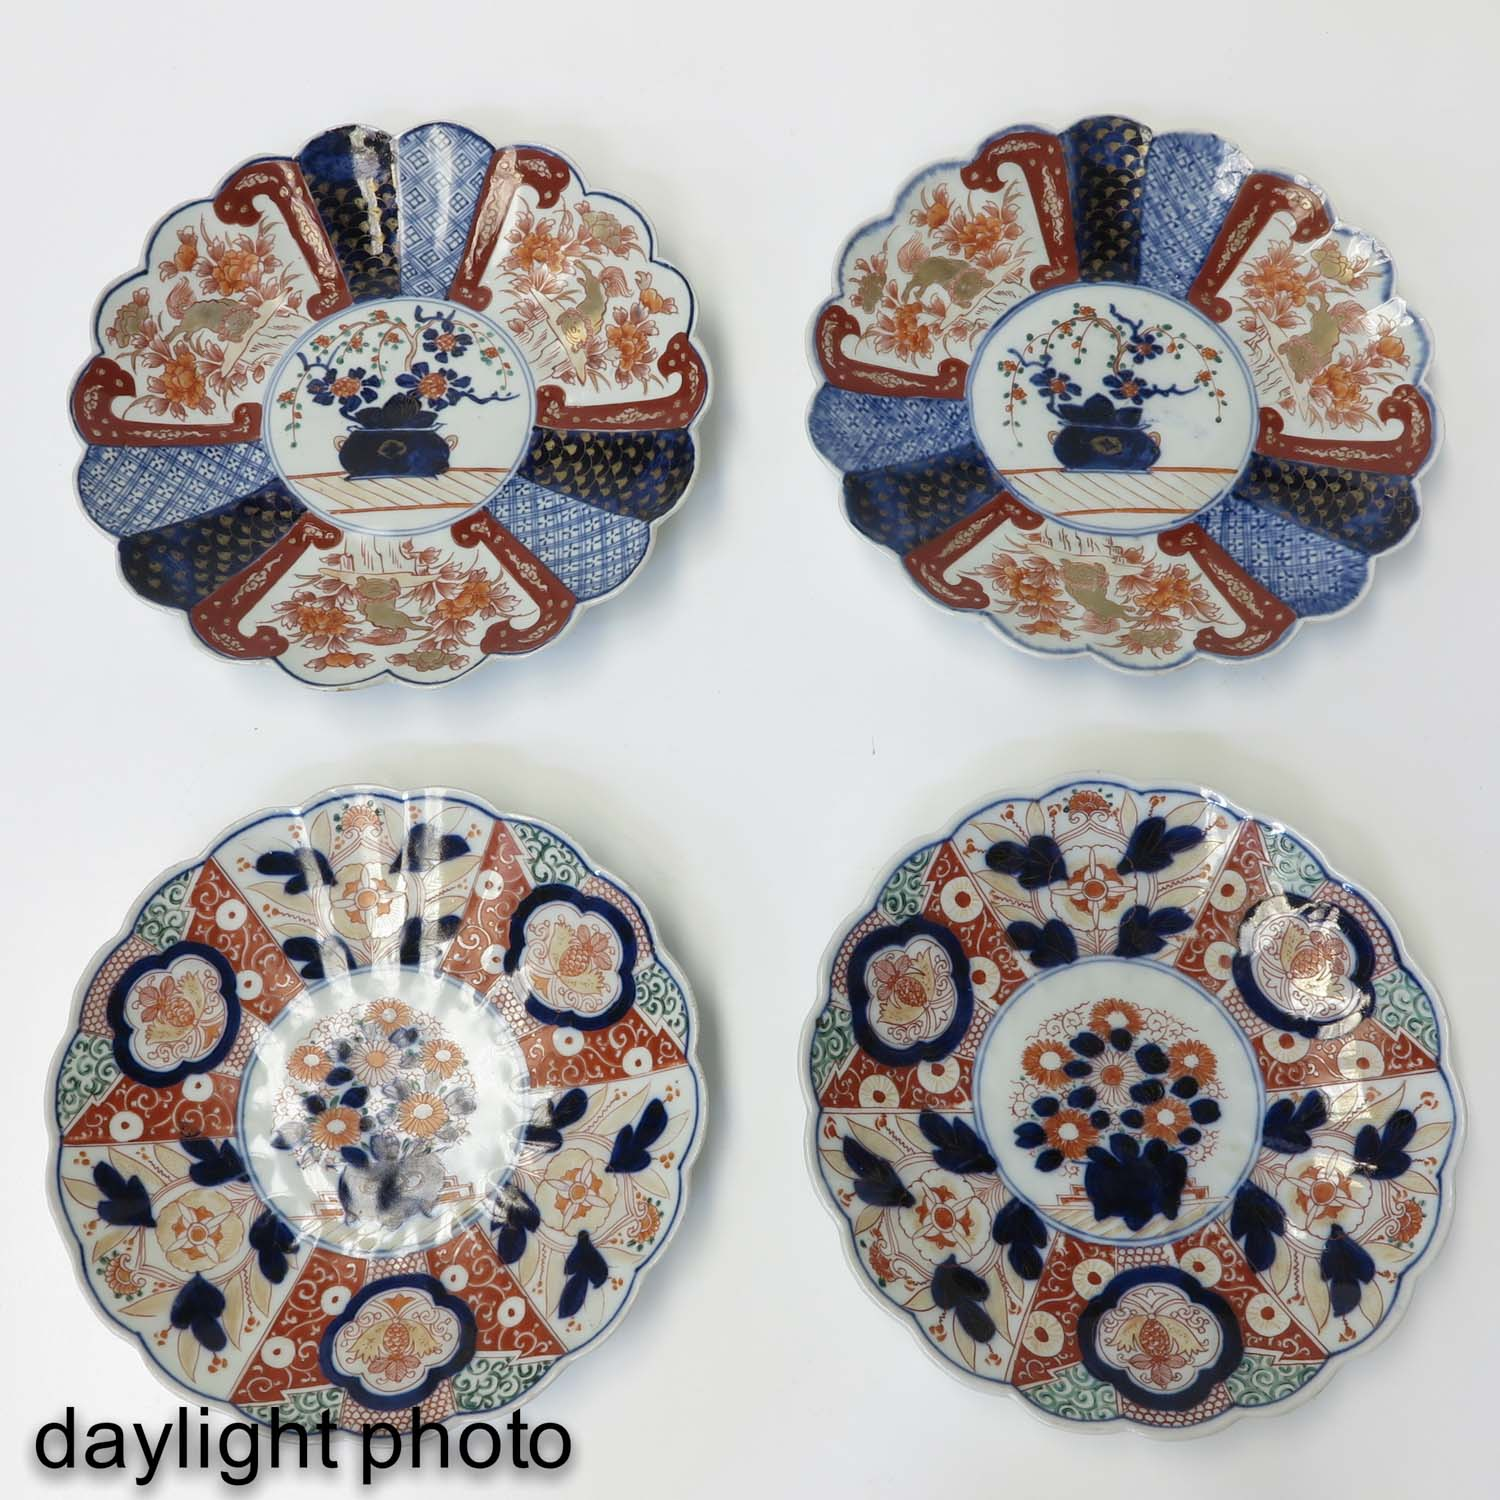 A Collection of 4 Imari Plates - Image 7 of 10